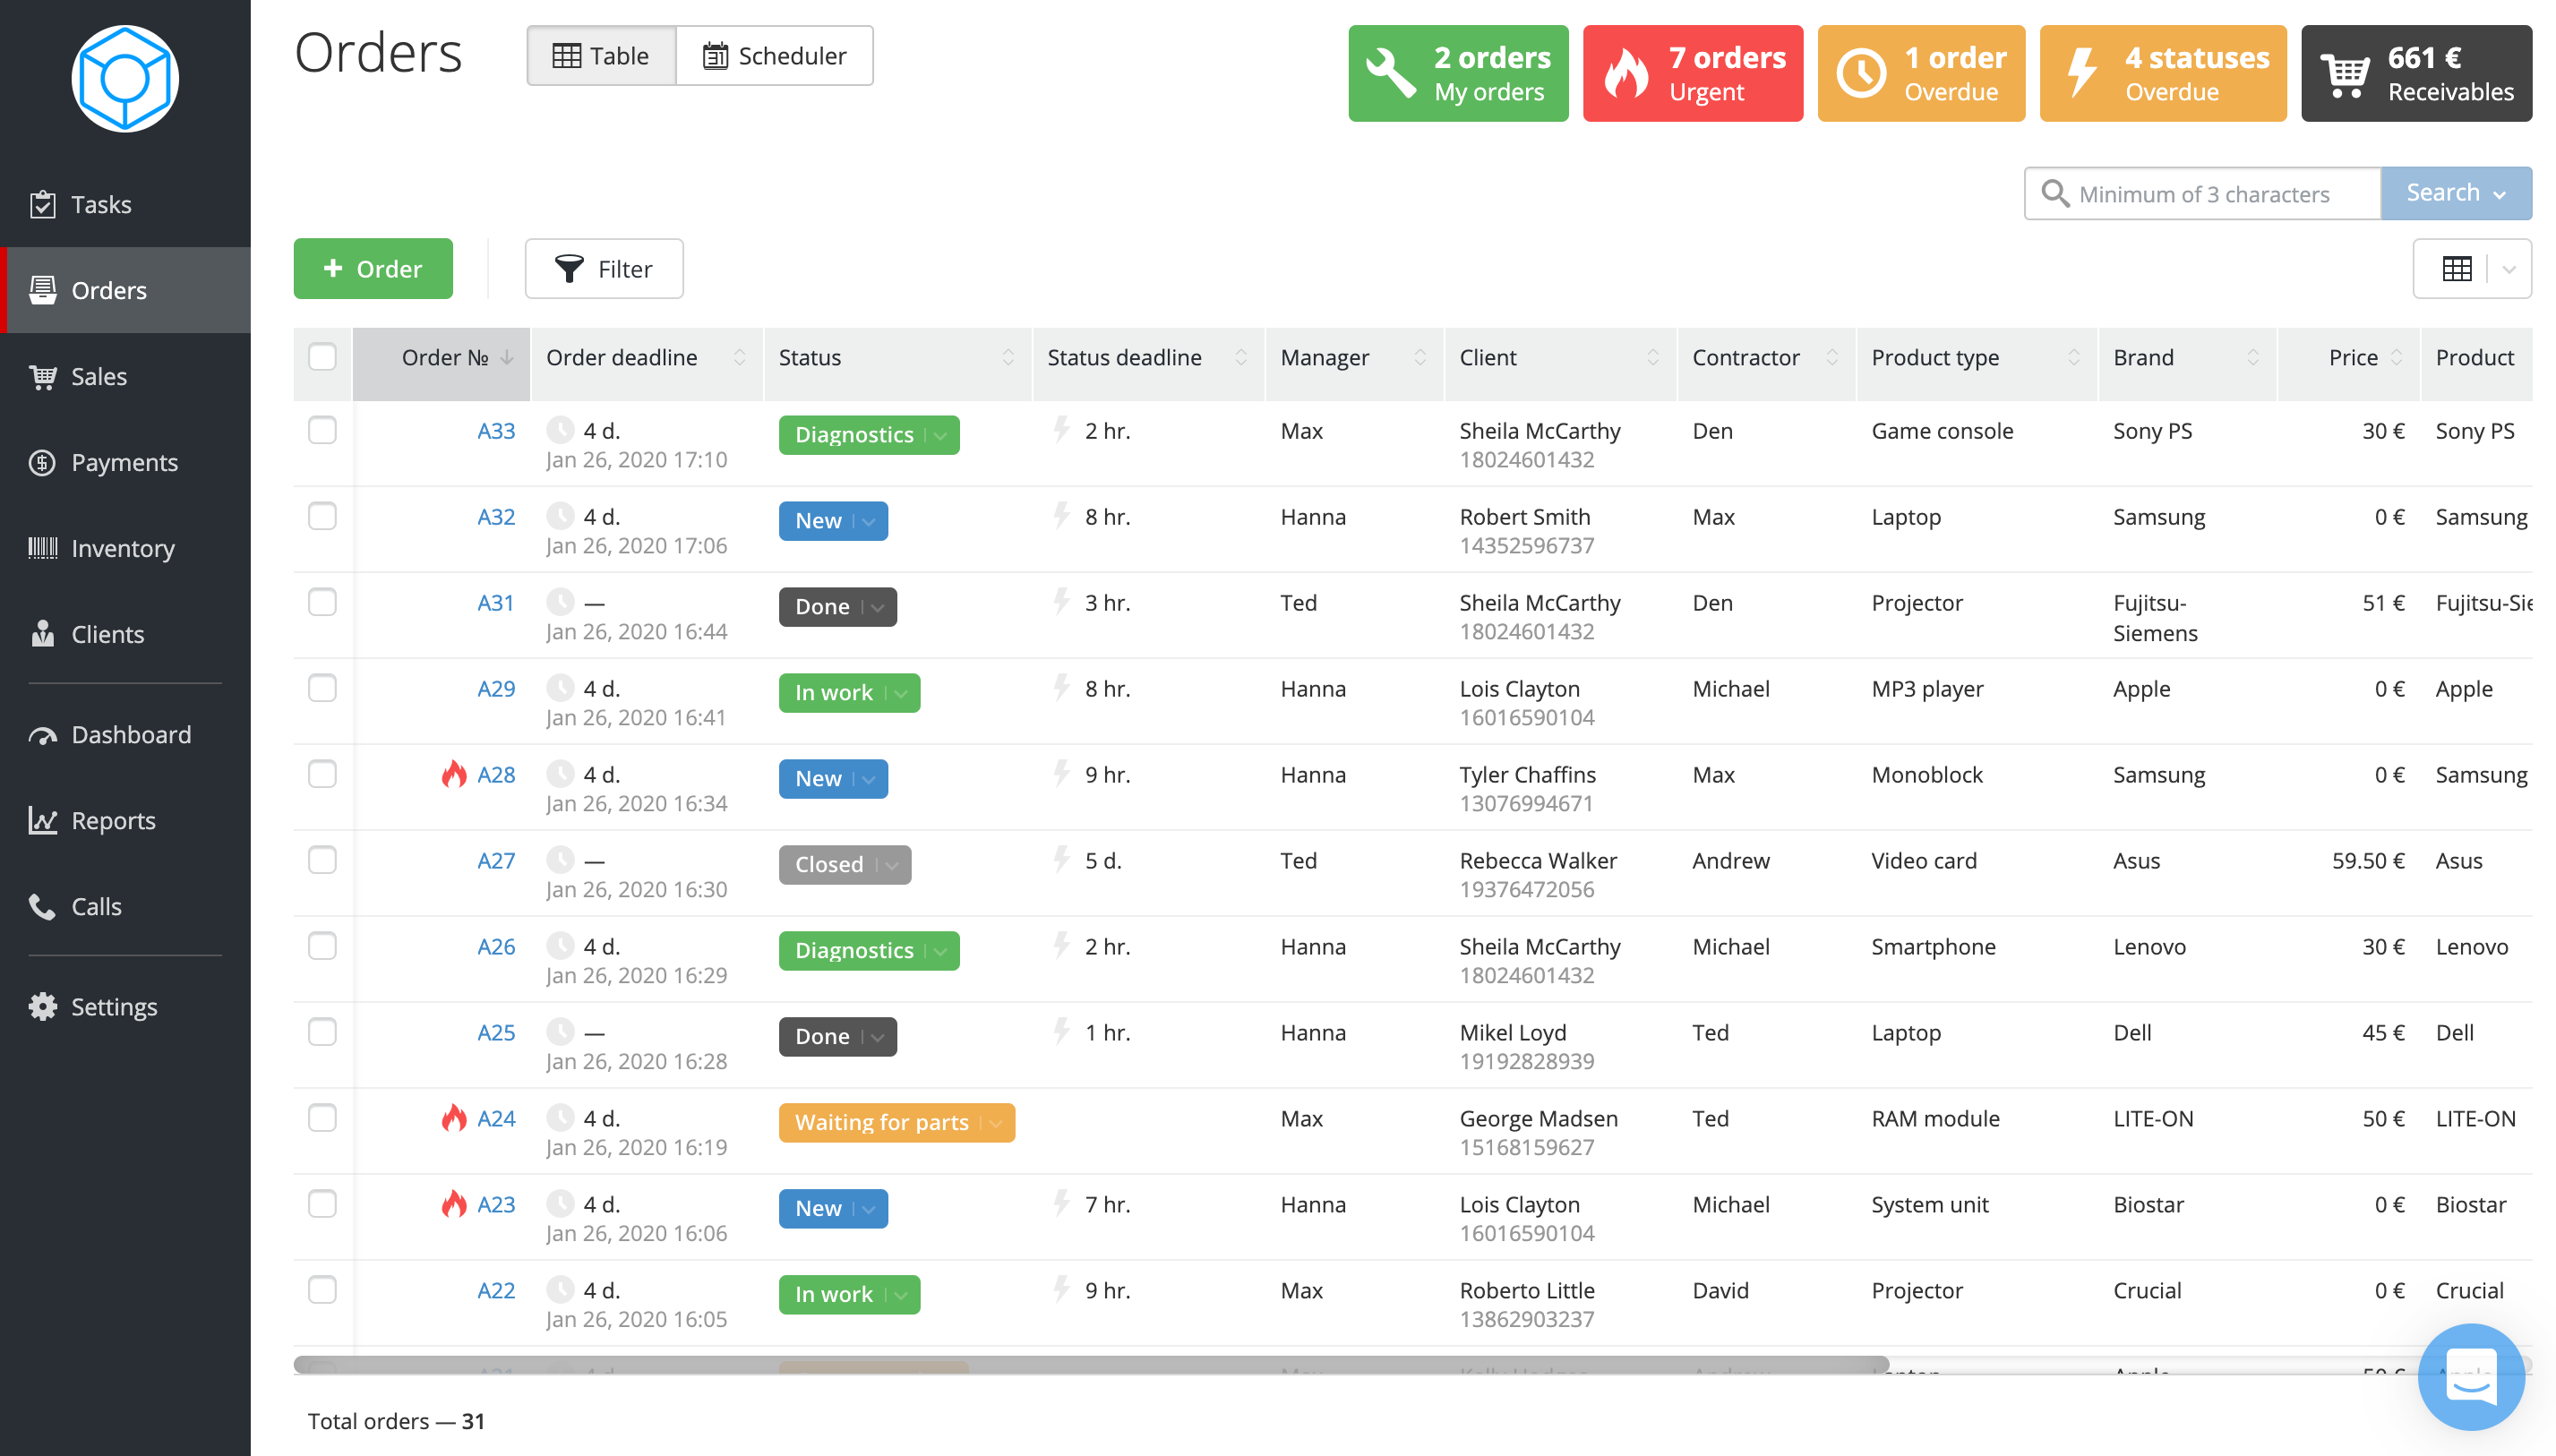 Order management page puts all your orders in a single table. The order entry contains the order number, status, deadline, contractor, client, and many more useful data columns. Filter your orders the way that is simple and convenient for you